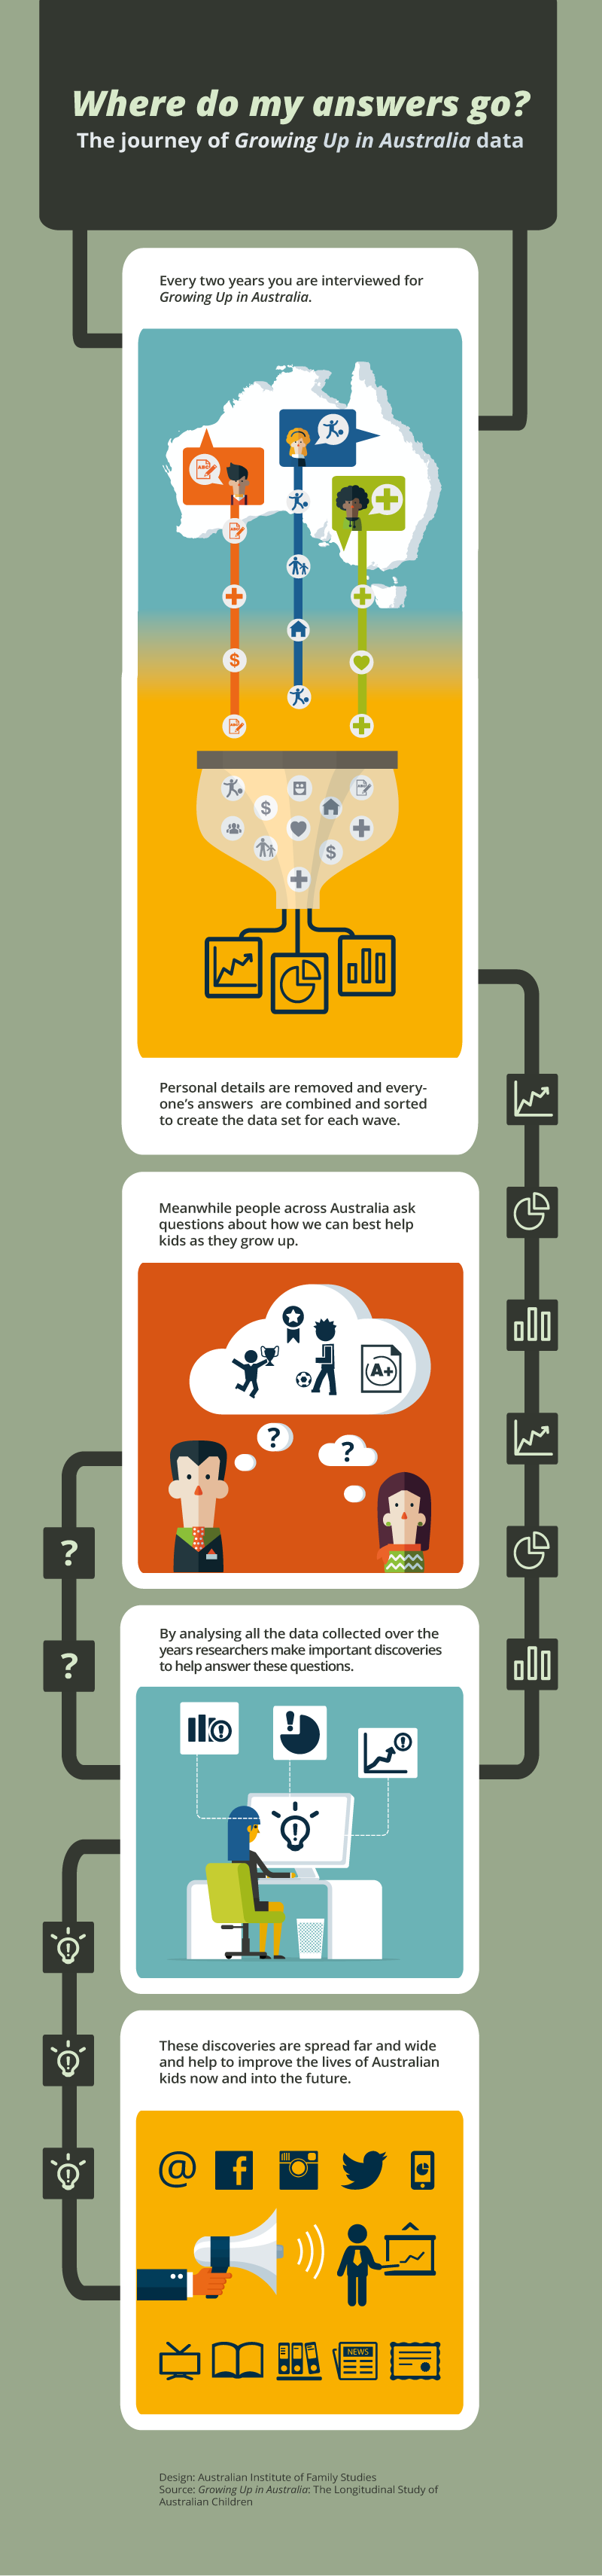 your data' journey infographic